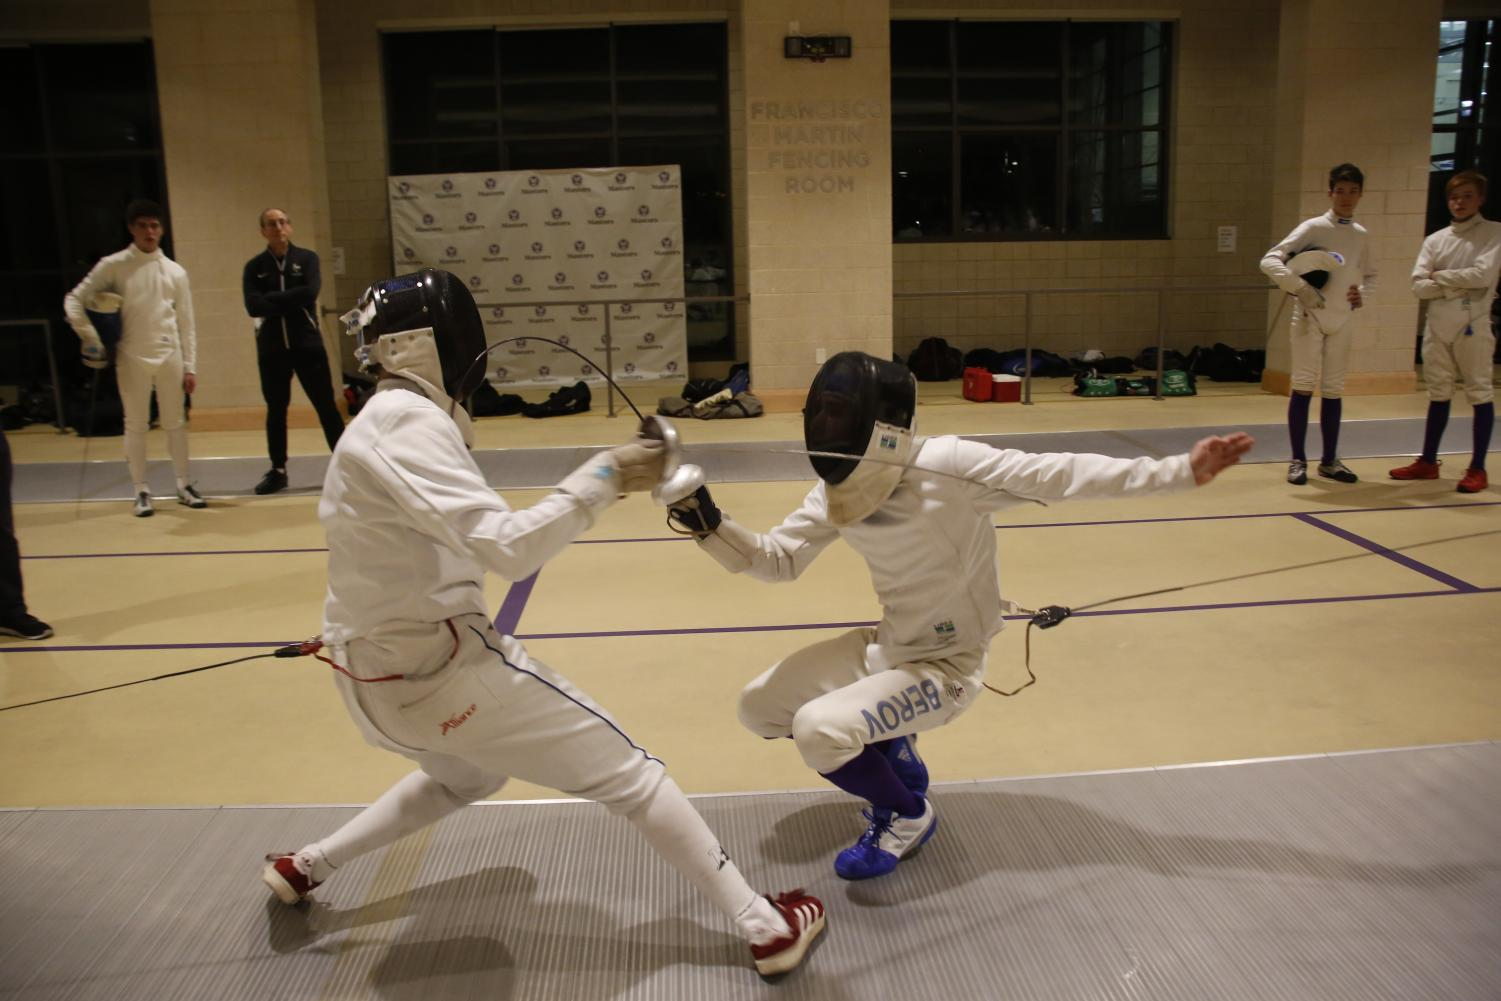 Masters fencers compete in the Francisco Martin Fencing Room.